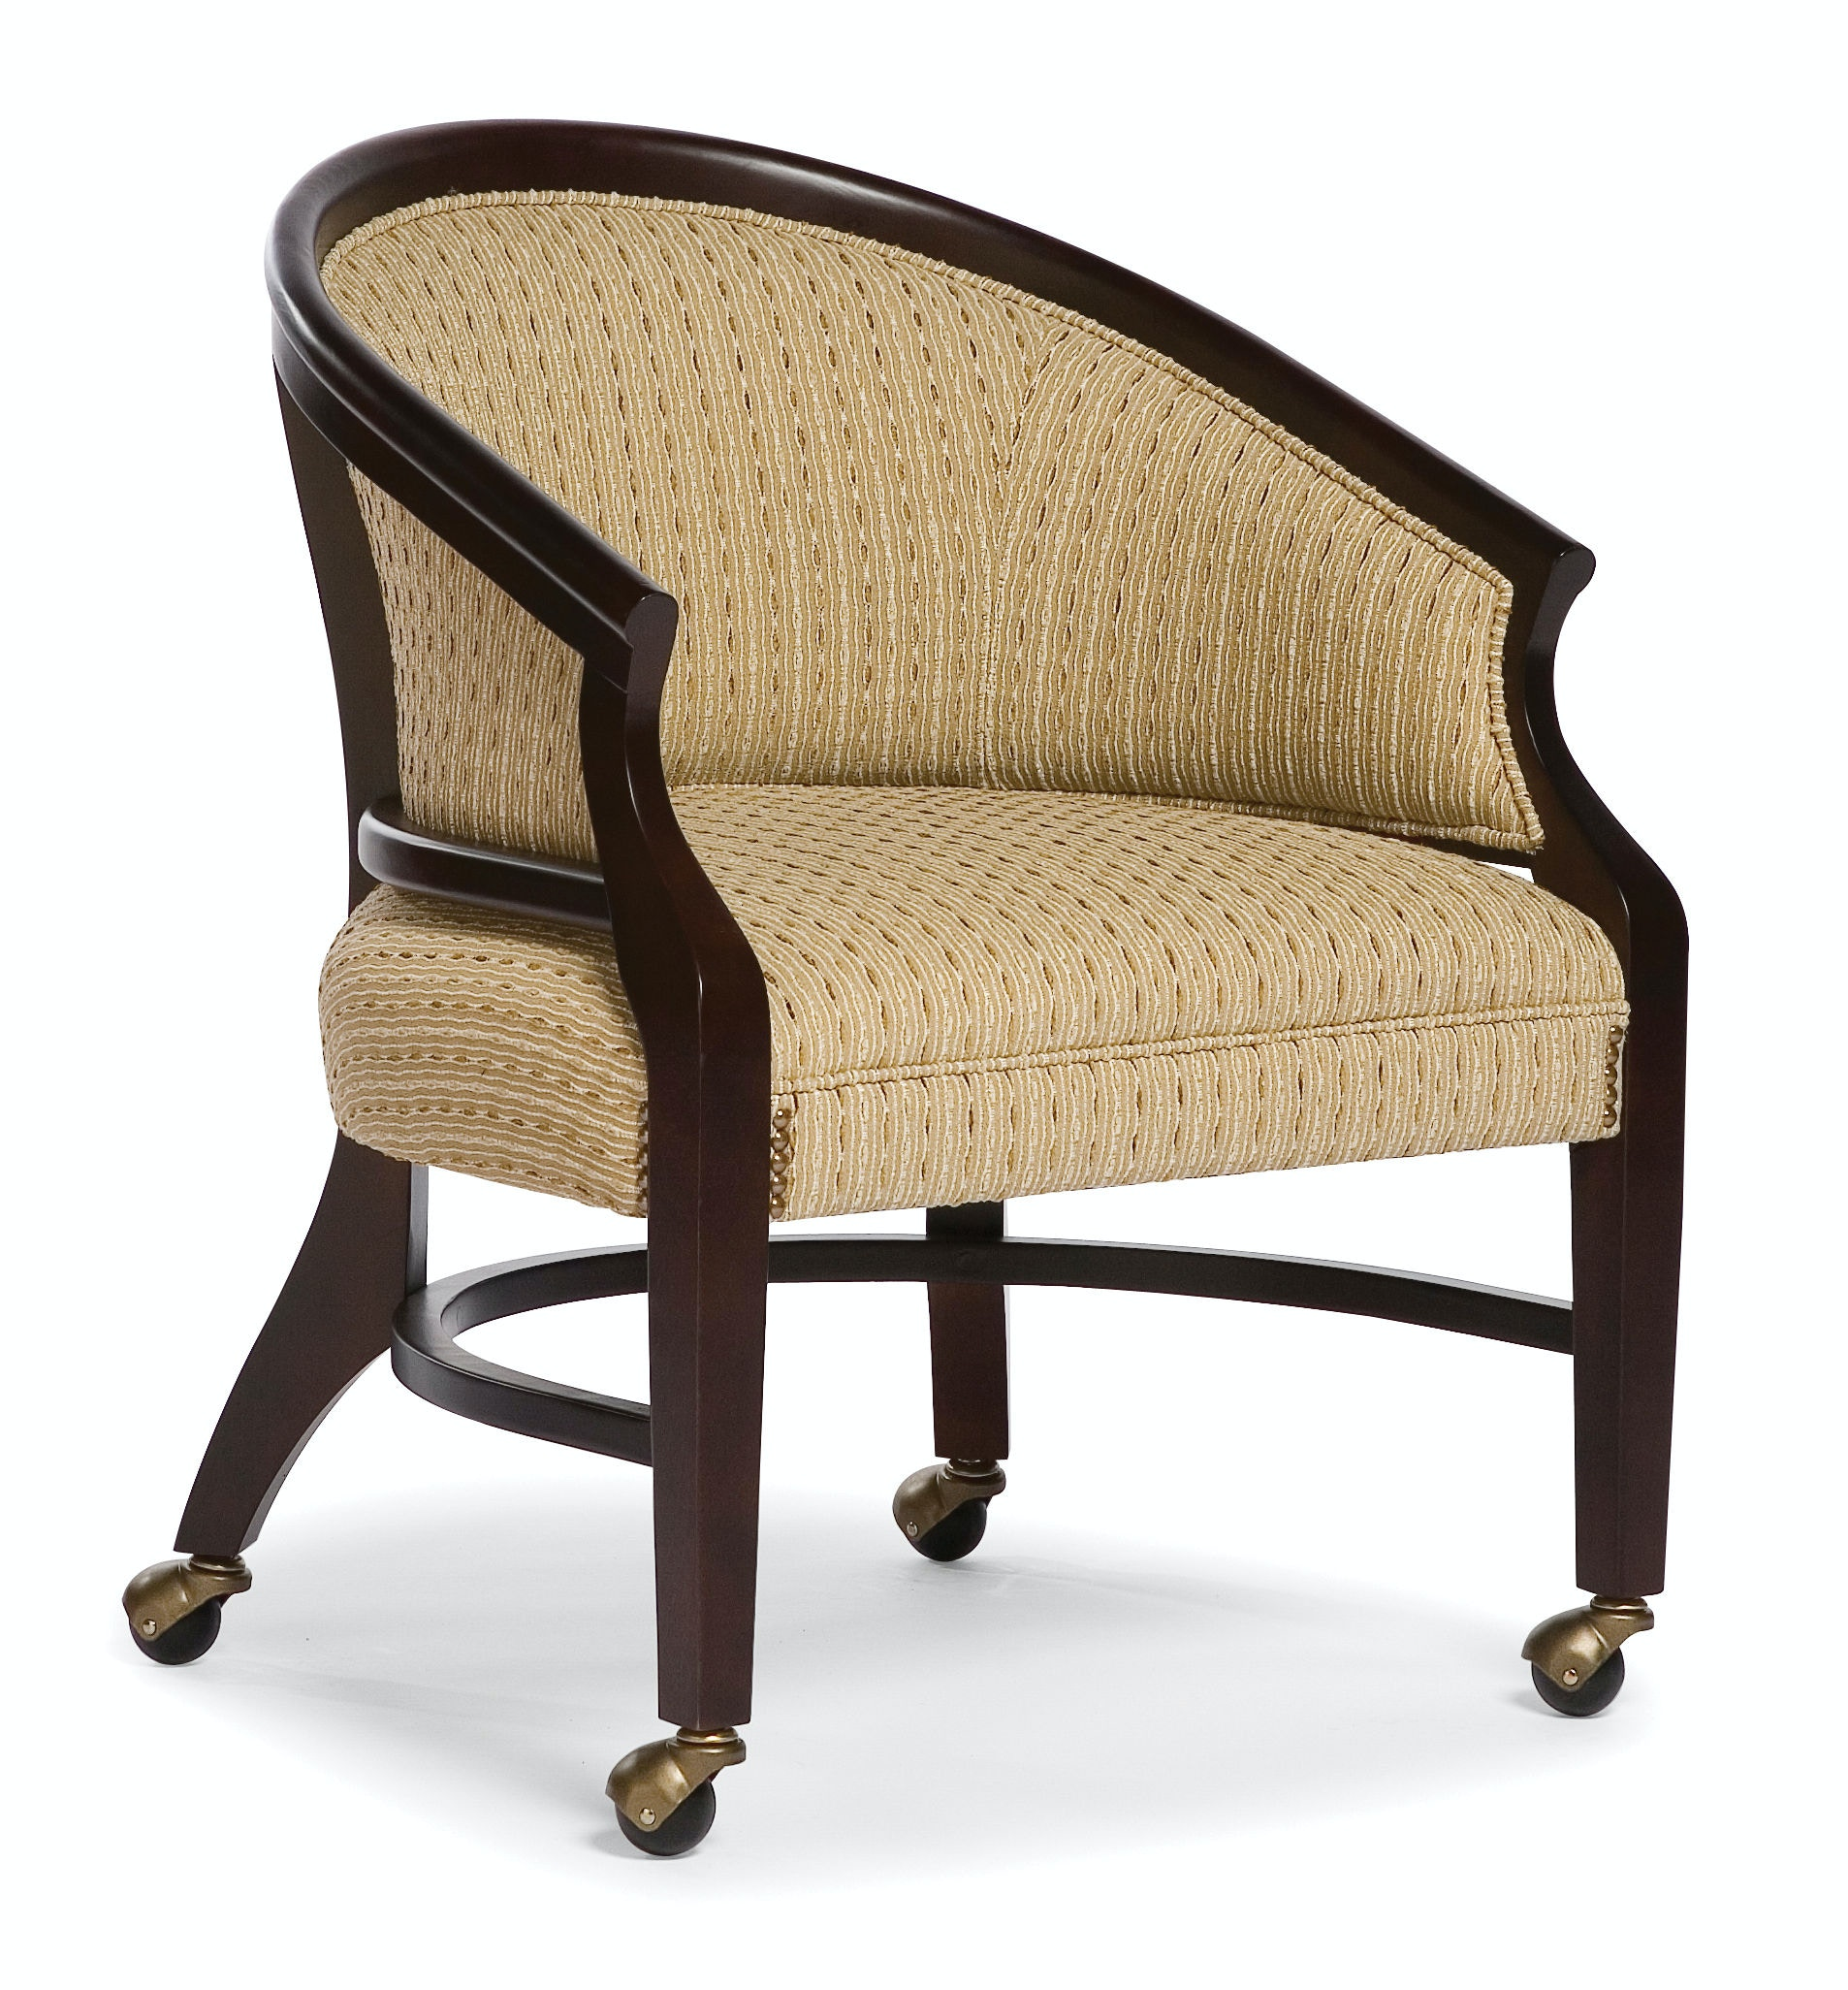 Fairfield Chair Company Danbury Occasional Chair 6080 A4